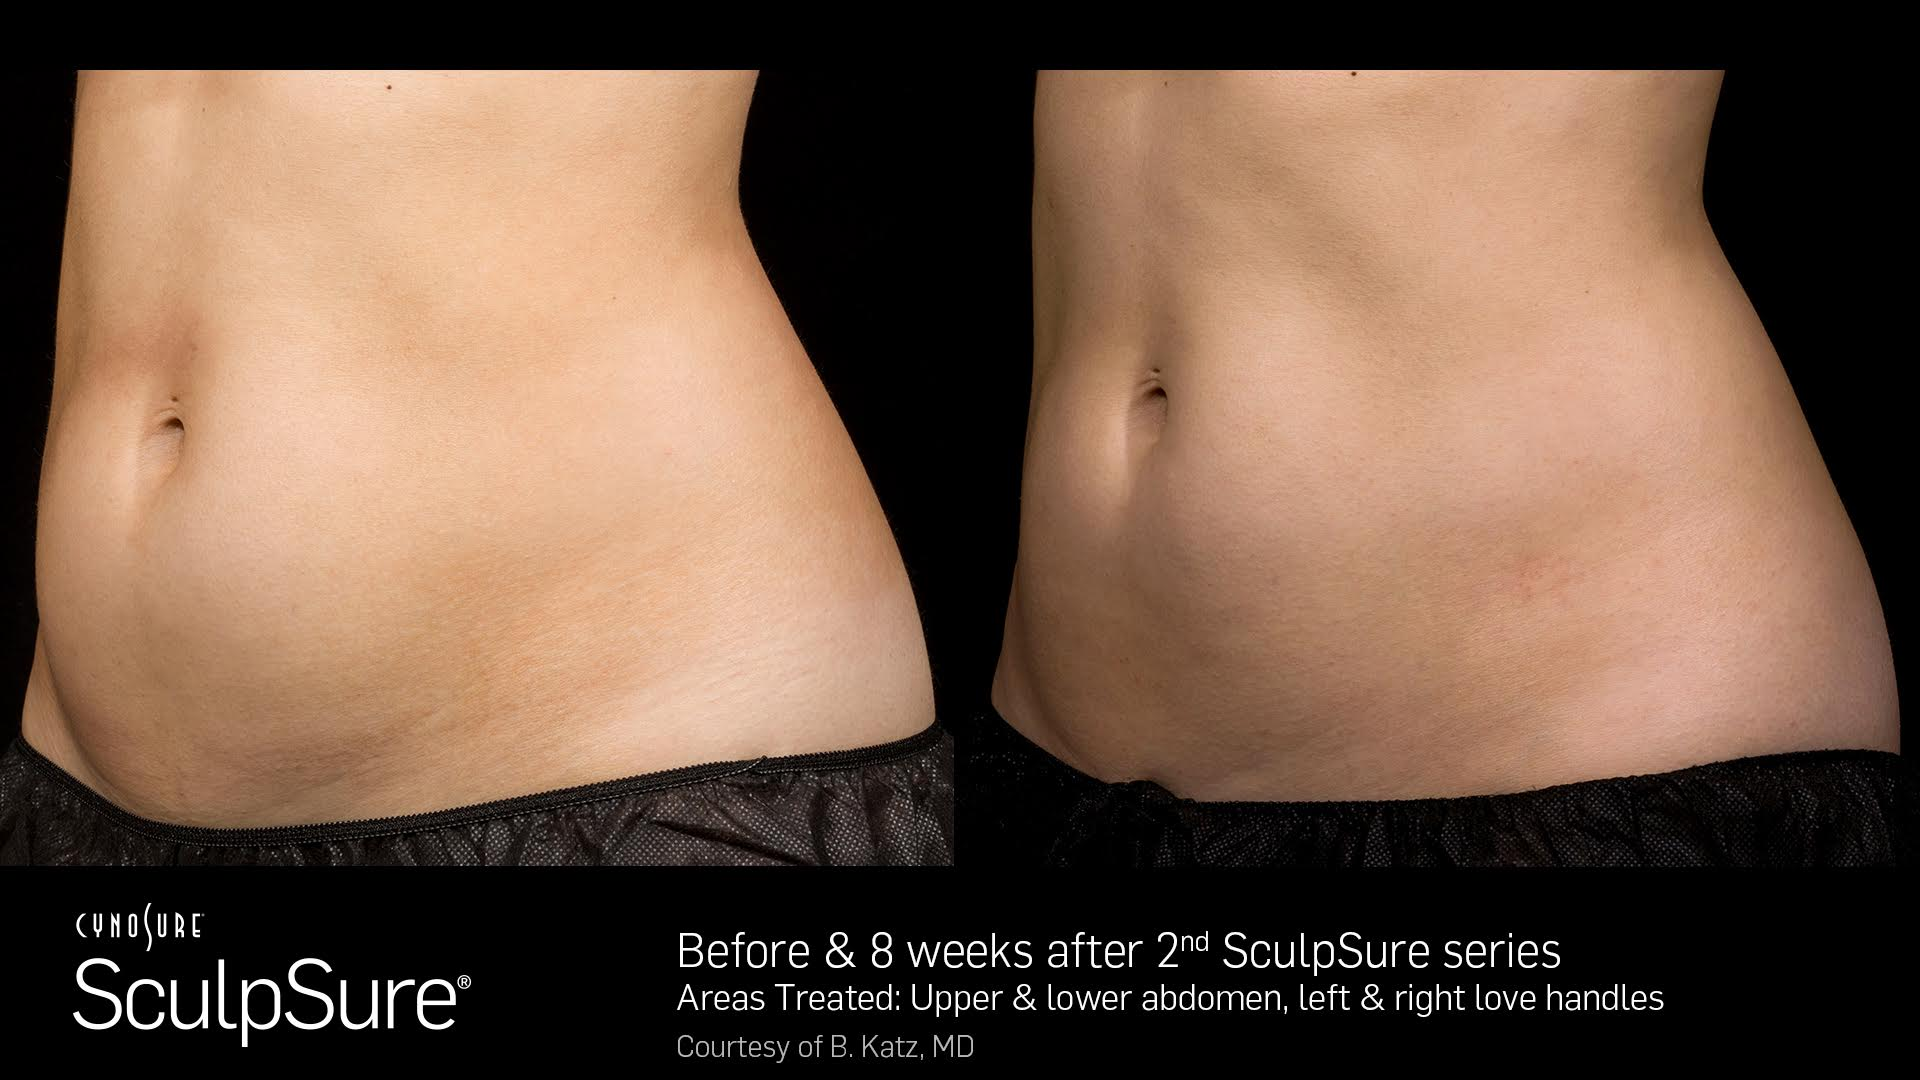 sculpsure body before and after 8 weeks